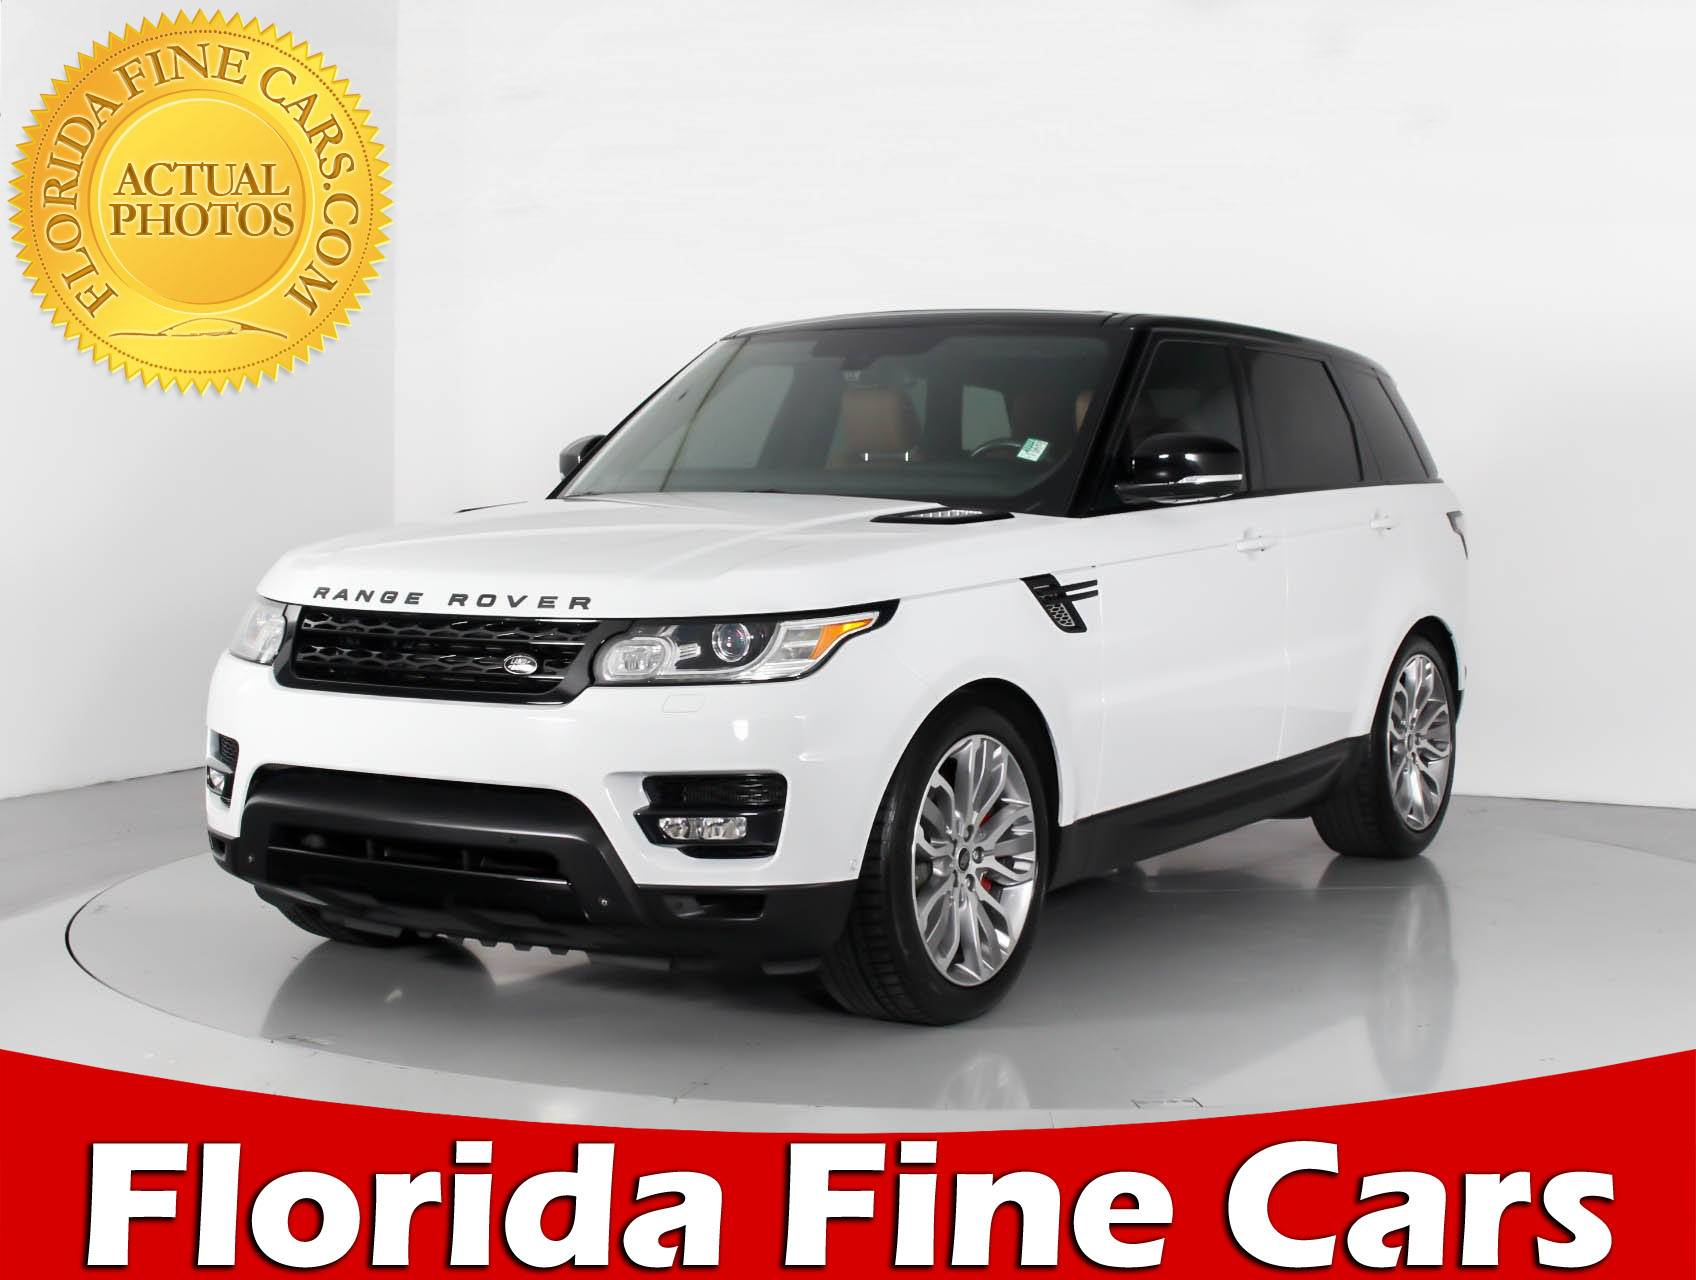 50 Best Used Land Rover Range Rover Sport for Sale Savings from